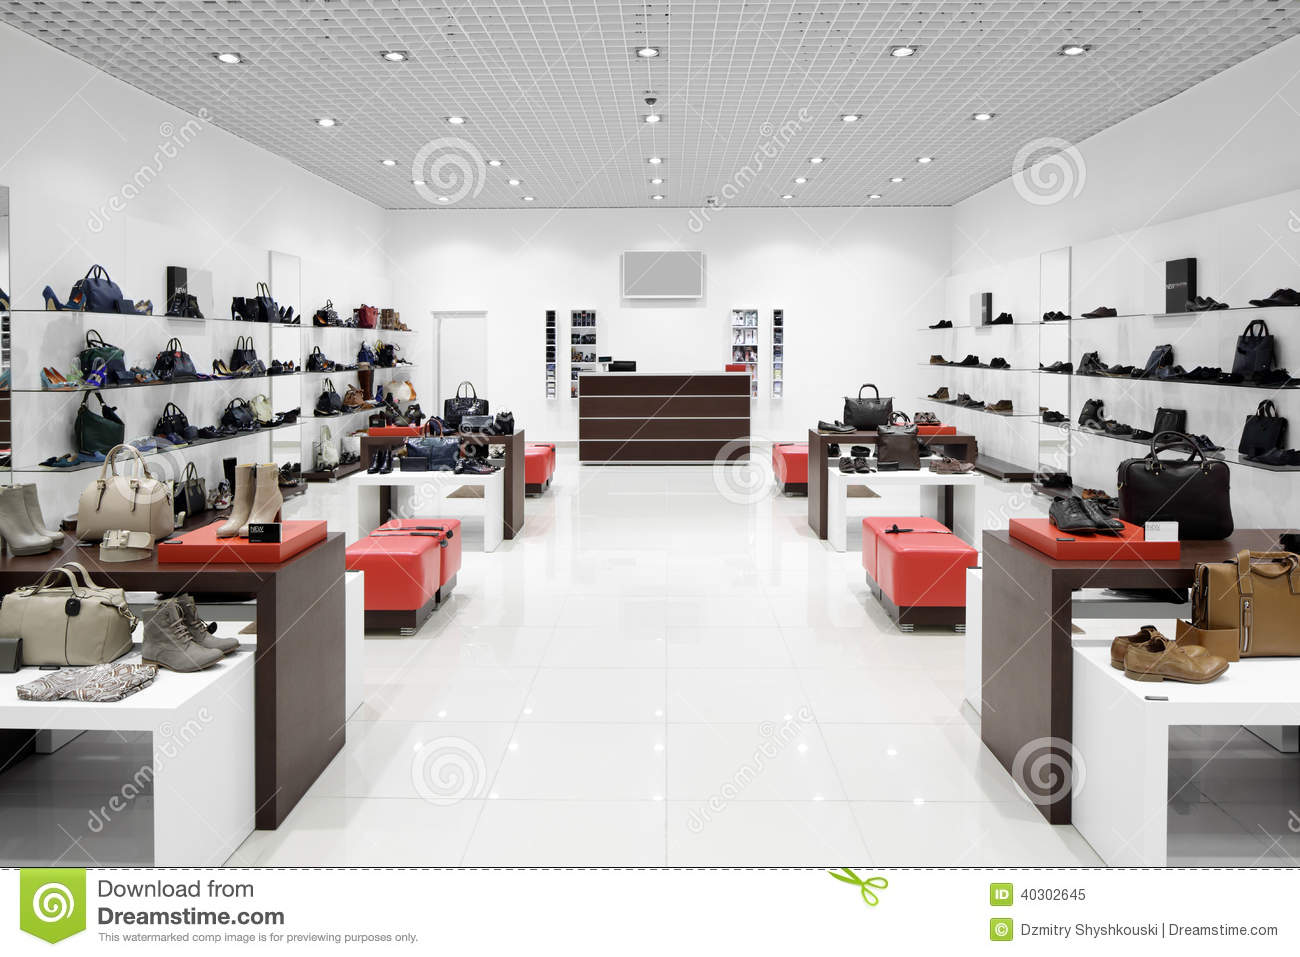 Interior Of Shoe Store In Modern European Mall Stock Image Image Of Atmosphere Clothes 40302645